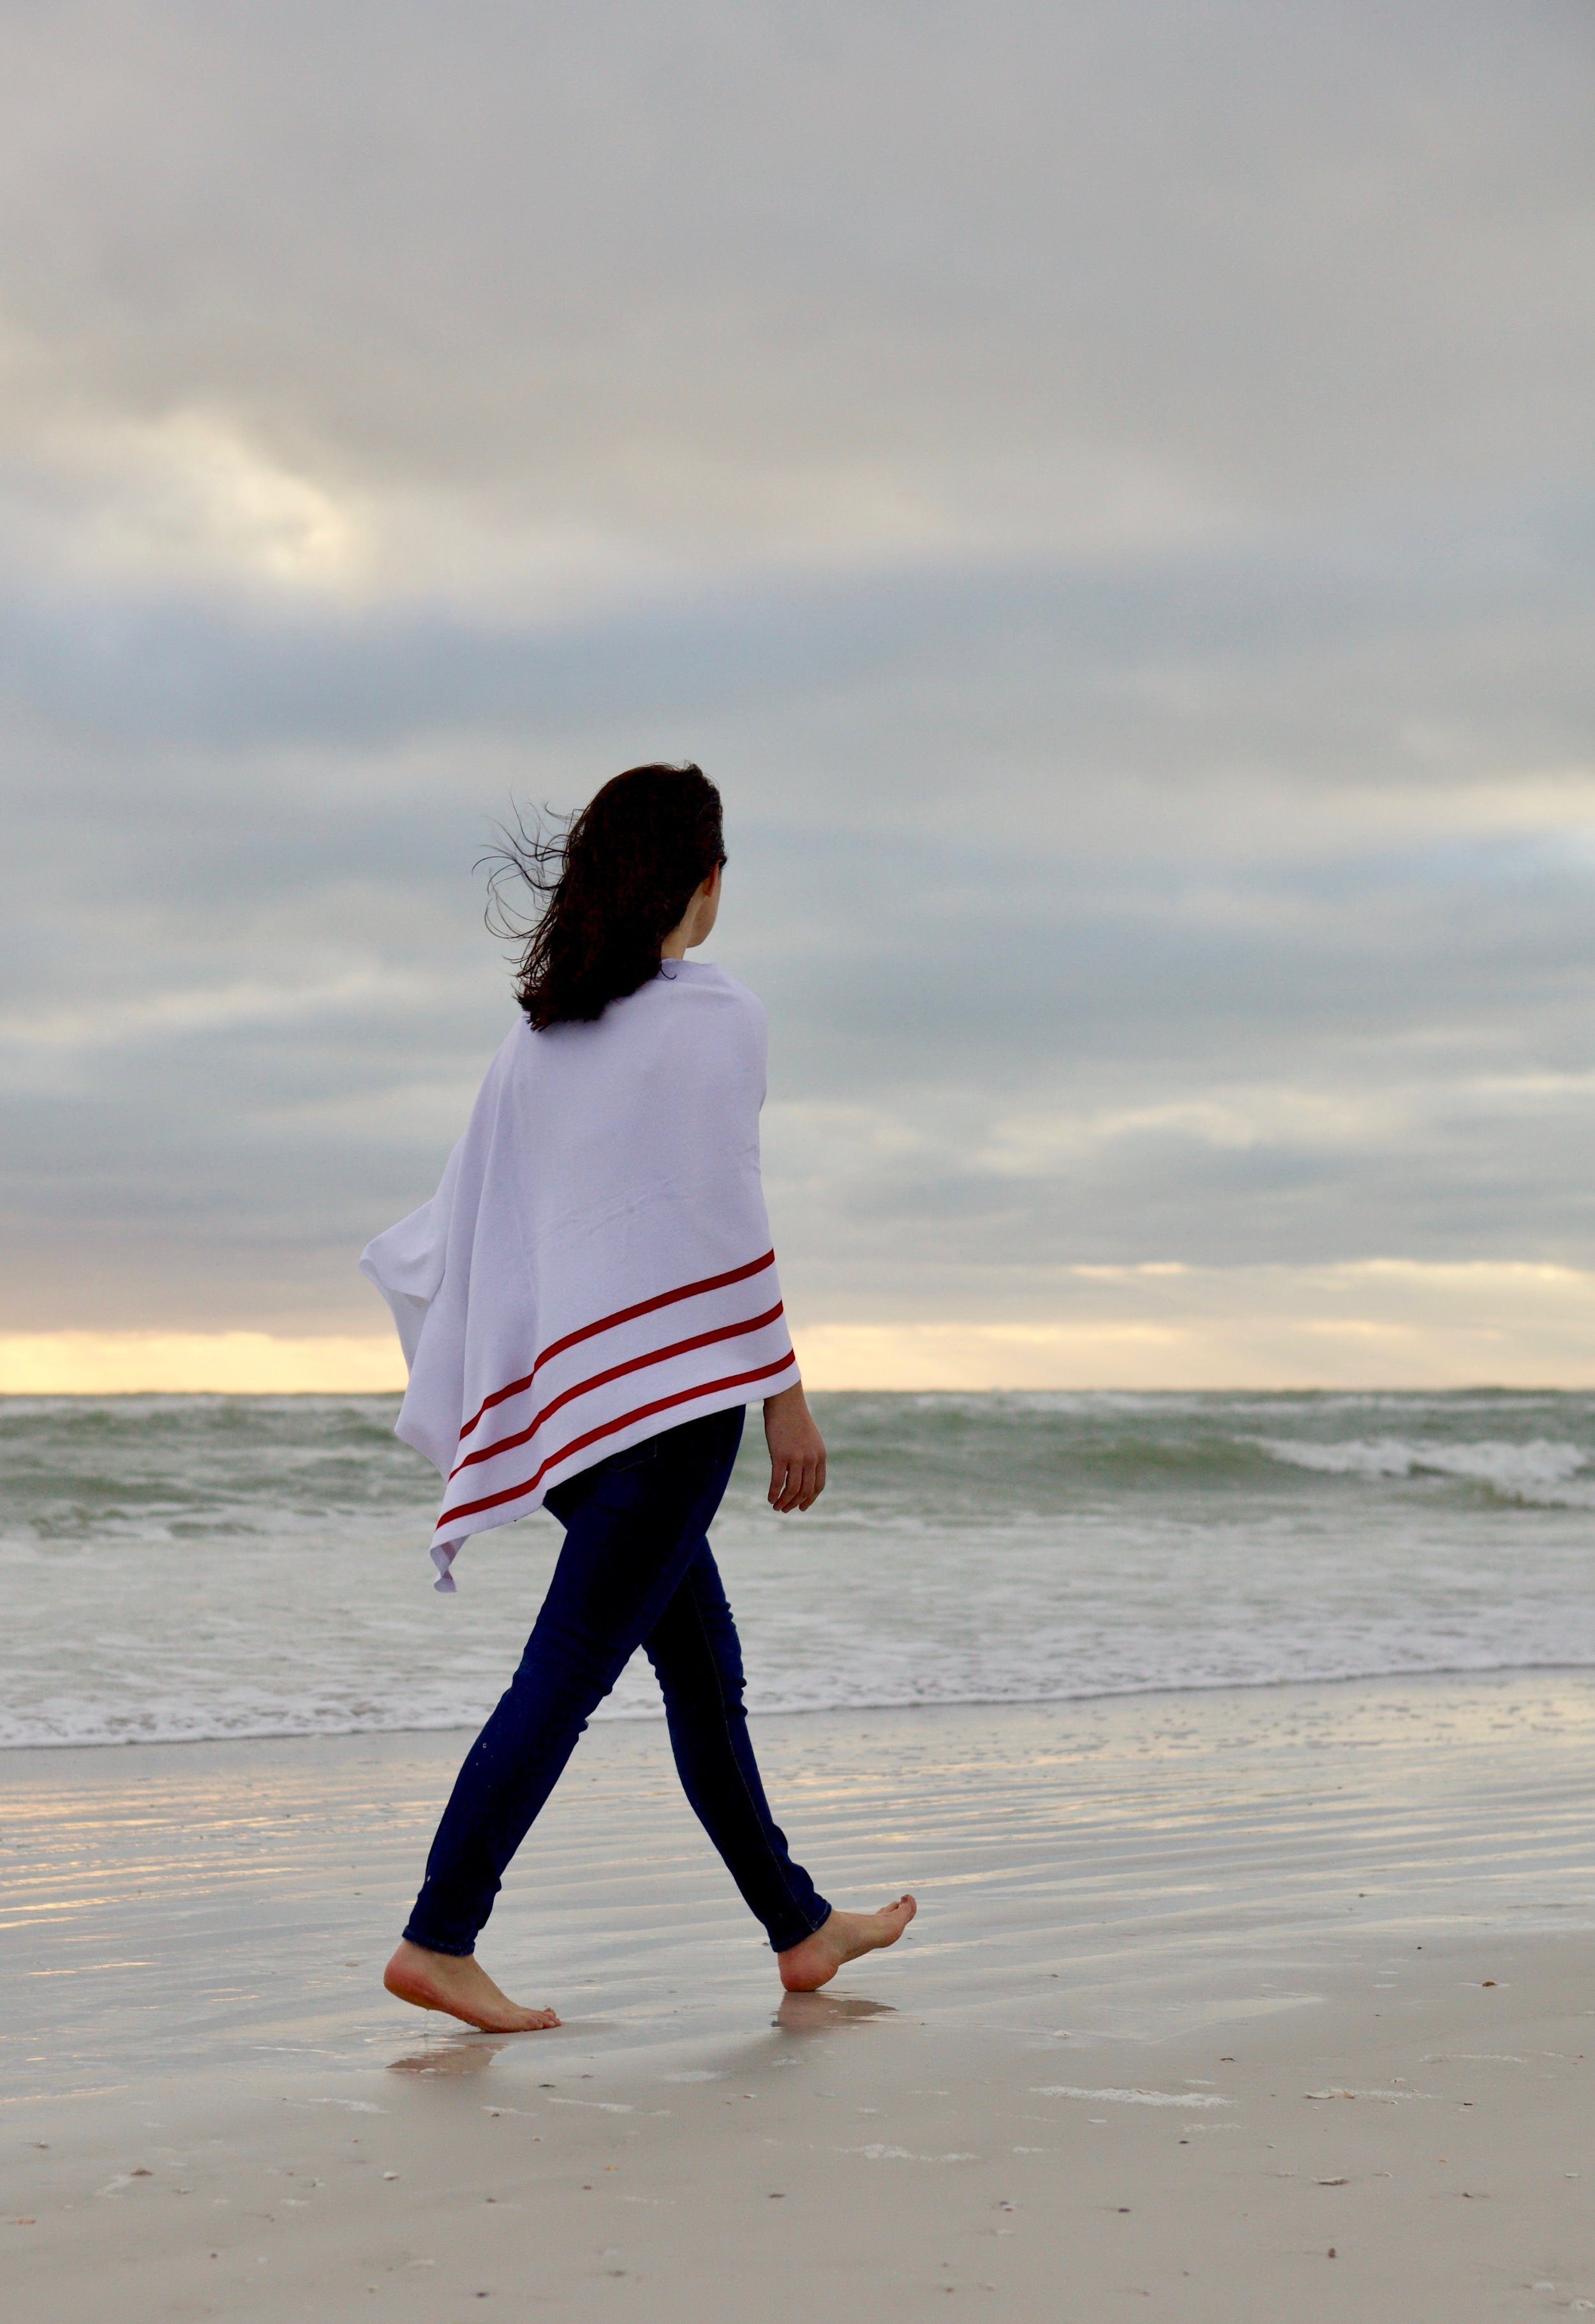 cANNES PONCHO - A stunning poncho with three bold stripes. 35'' W x 27'' L. Available in blue/white, black/white and red/white.